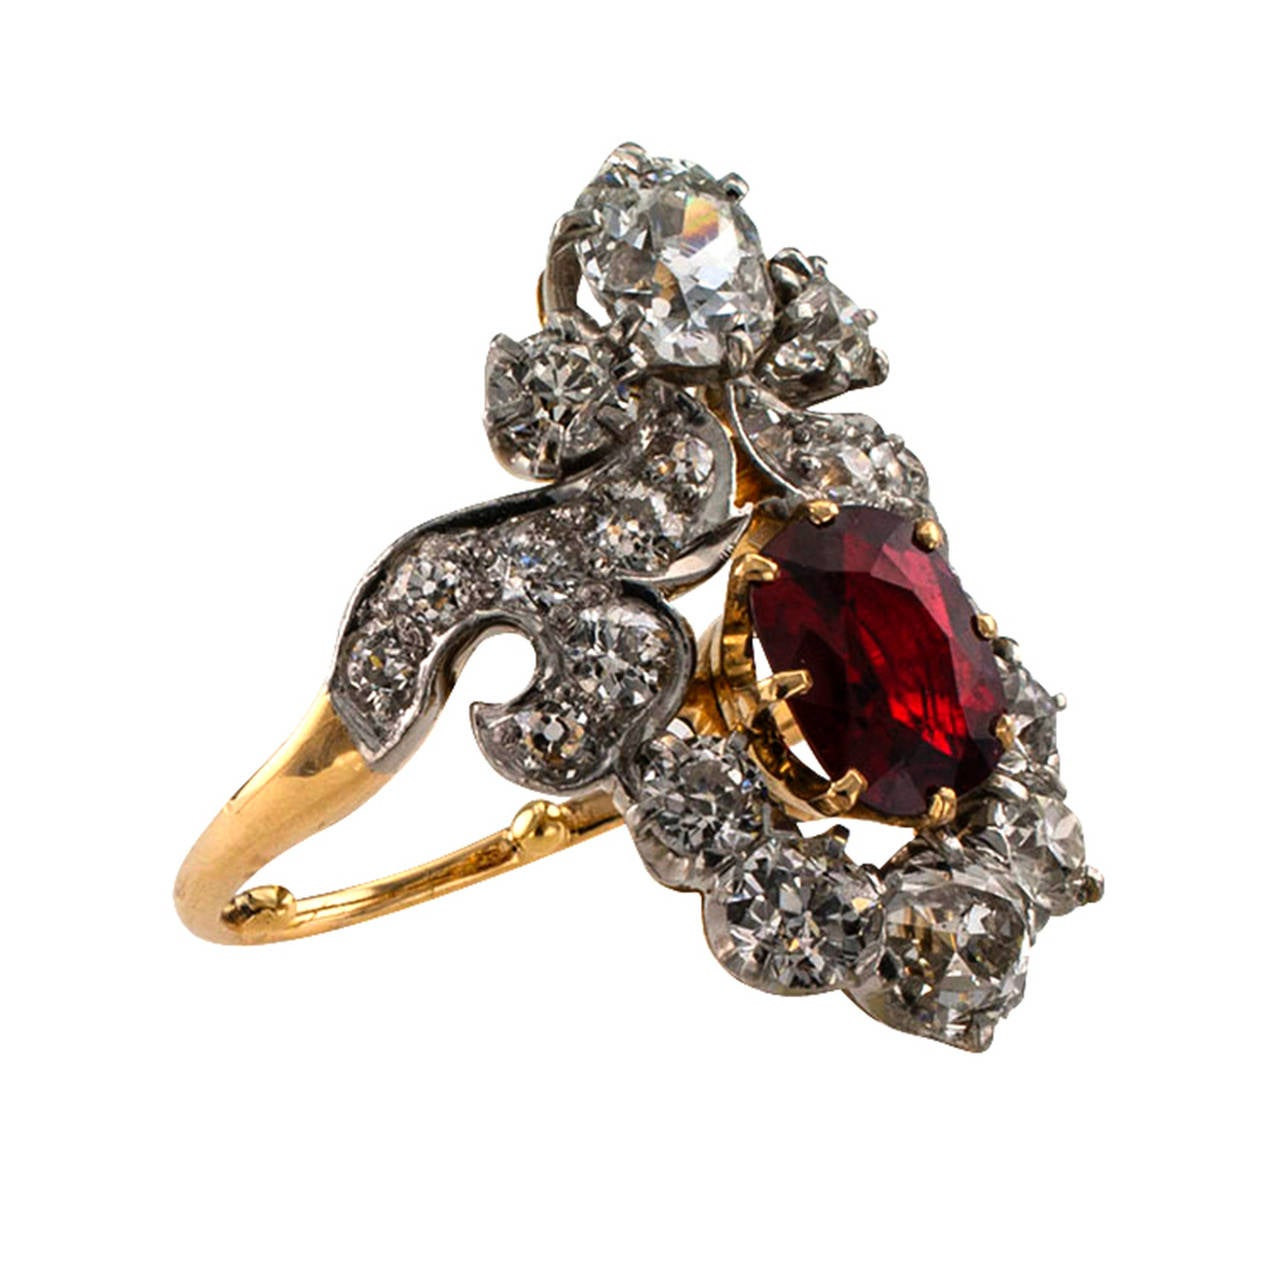 1.50 Carats Red Spinel and Diamond Edwardian Ring    Spinel is a gemstone of rare beauty and according to GIA, red Spinel is the most desirable color, highly sought after by connoisseurs and collectors.  It is also rich in metaphysical attributes